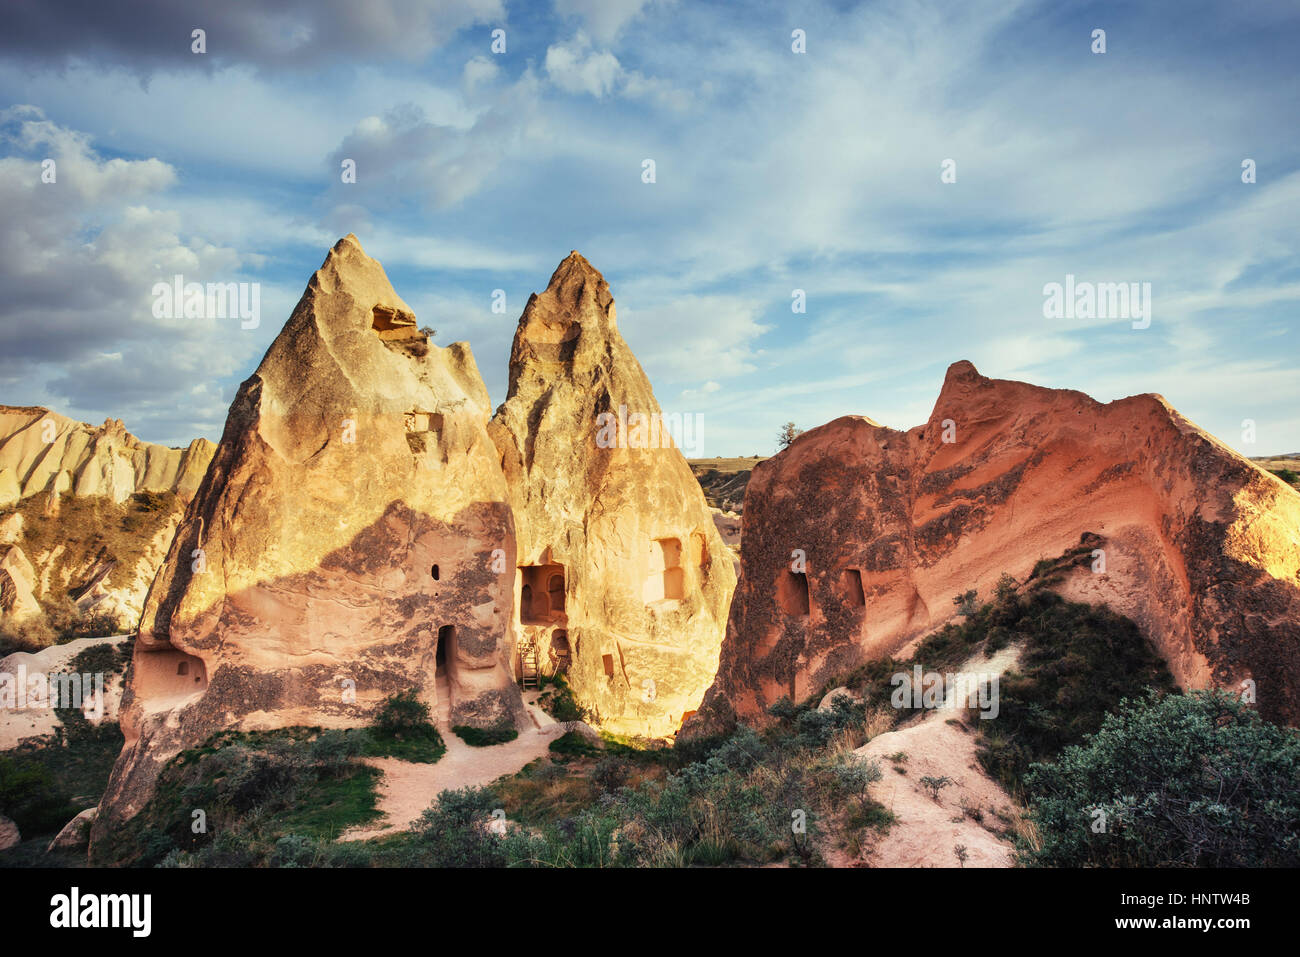 Unique geological formations in valley in Cappadocia - Stock Image